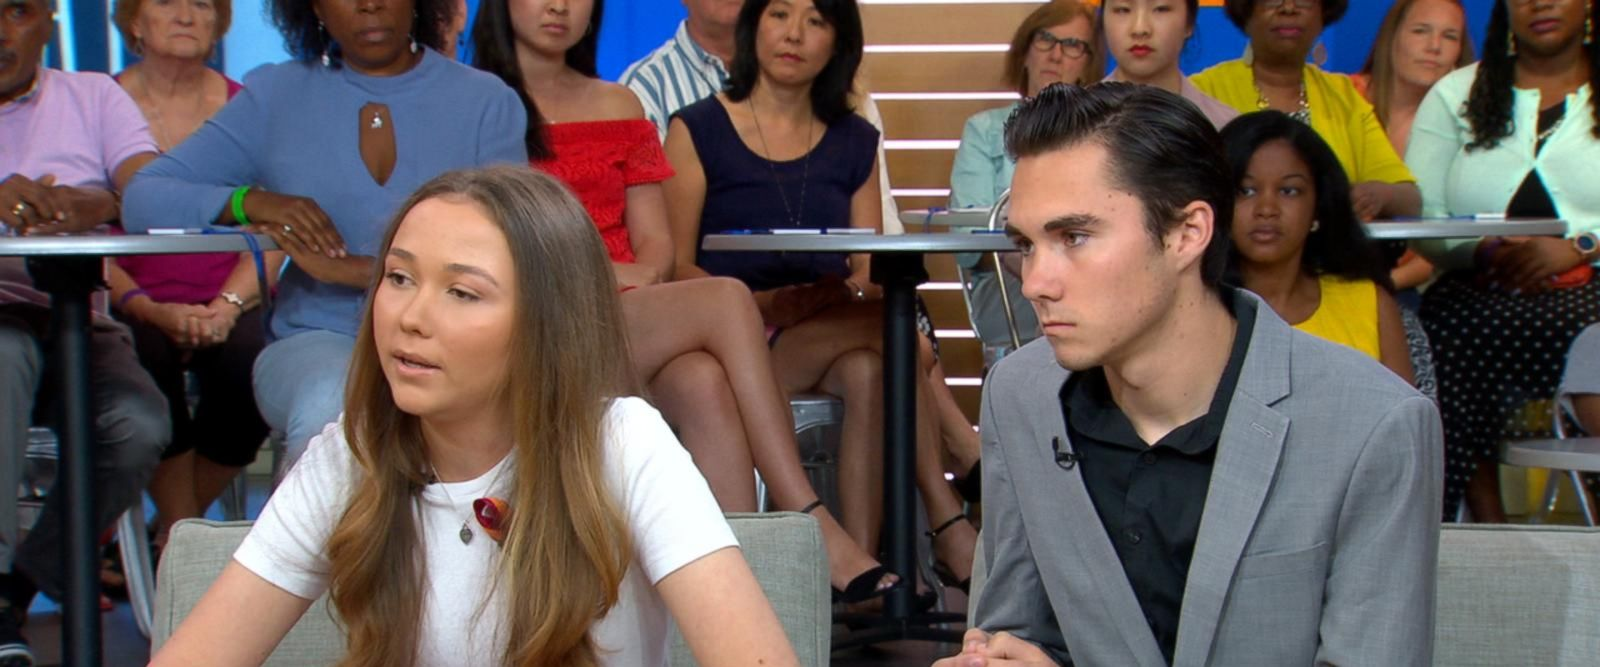 VIDEO:David and Lauren Hogg talk about becoming activists